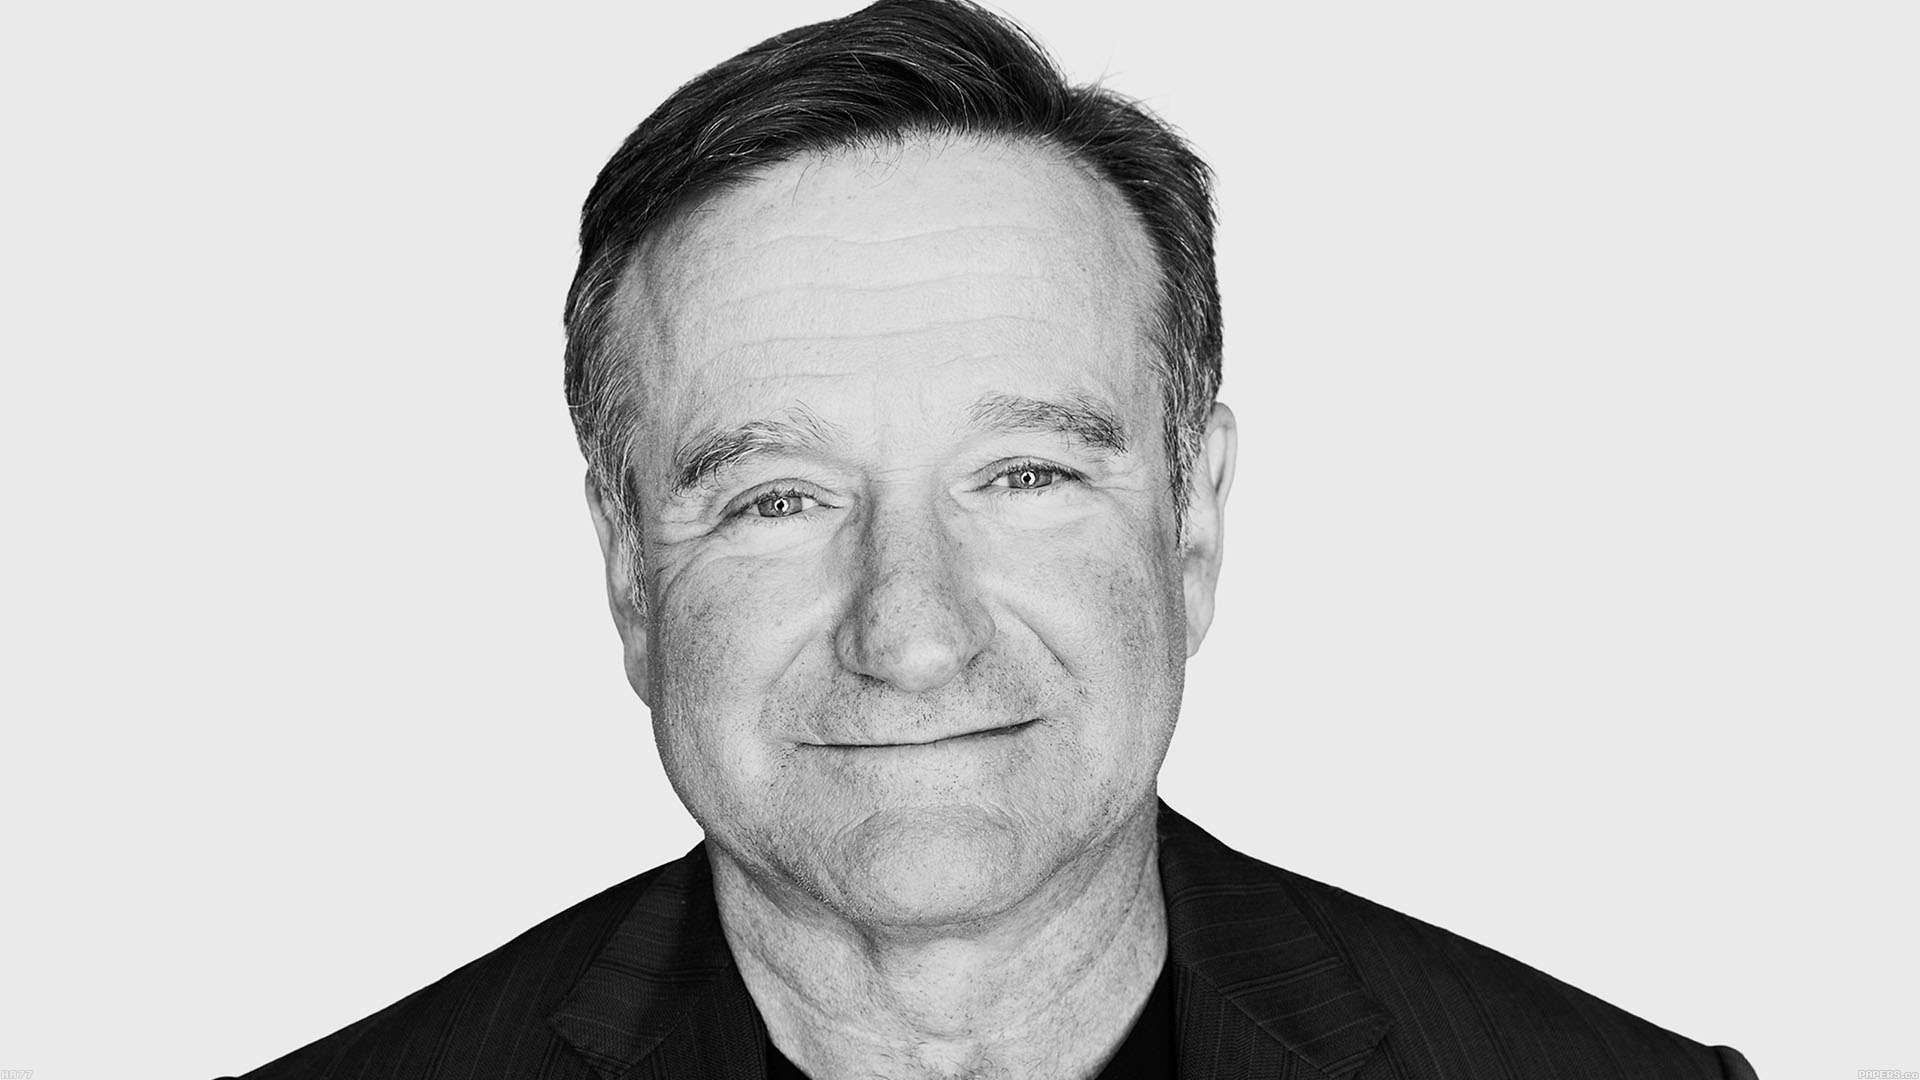 Iphone 8 Plus X Ray Wallpaper Ha77 Wallpaper Robin Williams Rip Face Missed Papers Co